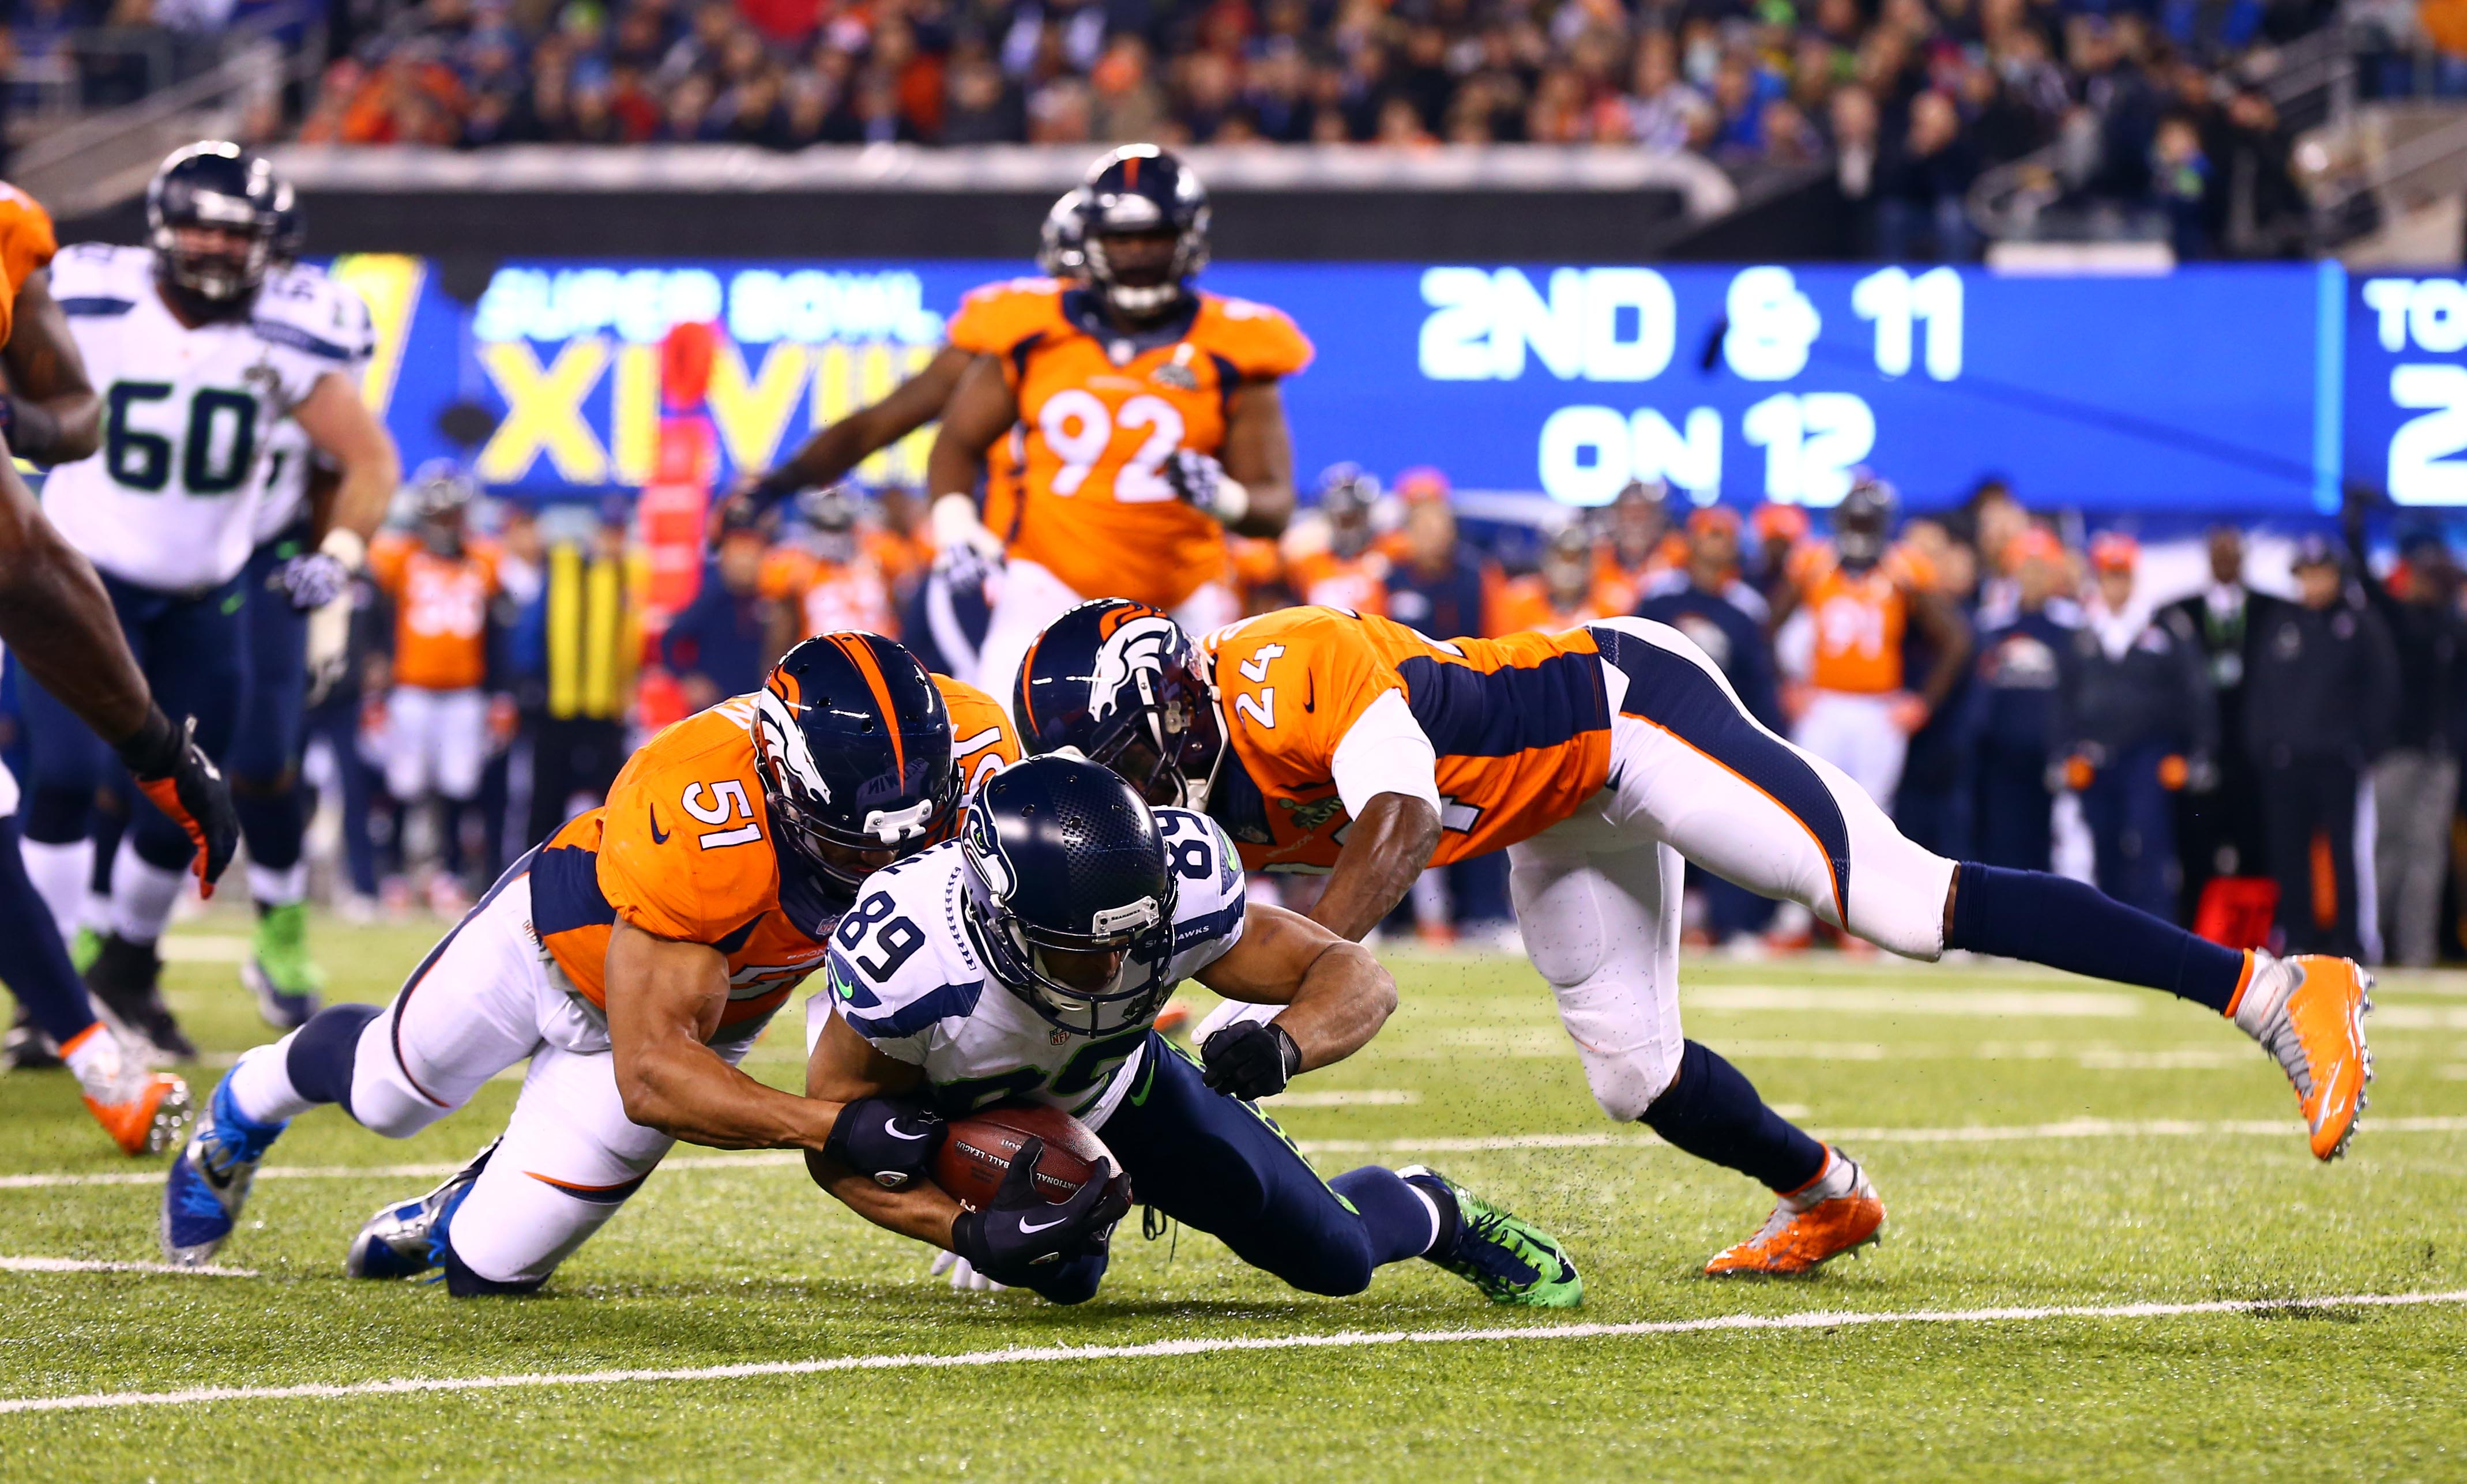 7711024-nfl-super-bowl-xlviii-denver-broncos-vs-seattle-seahawks